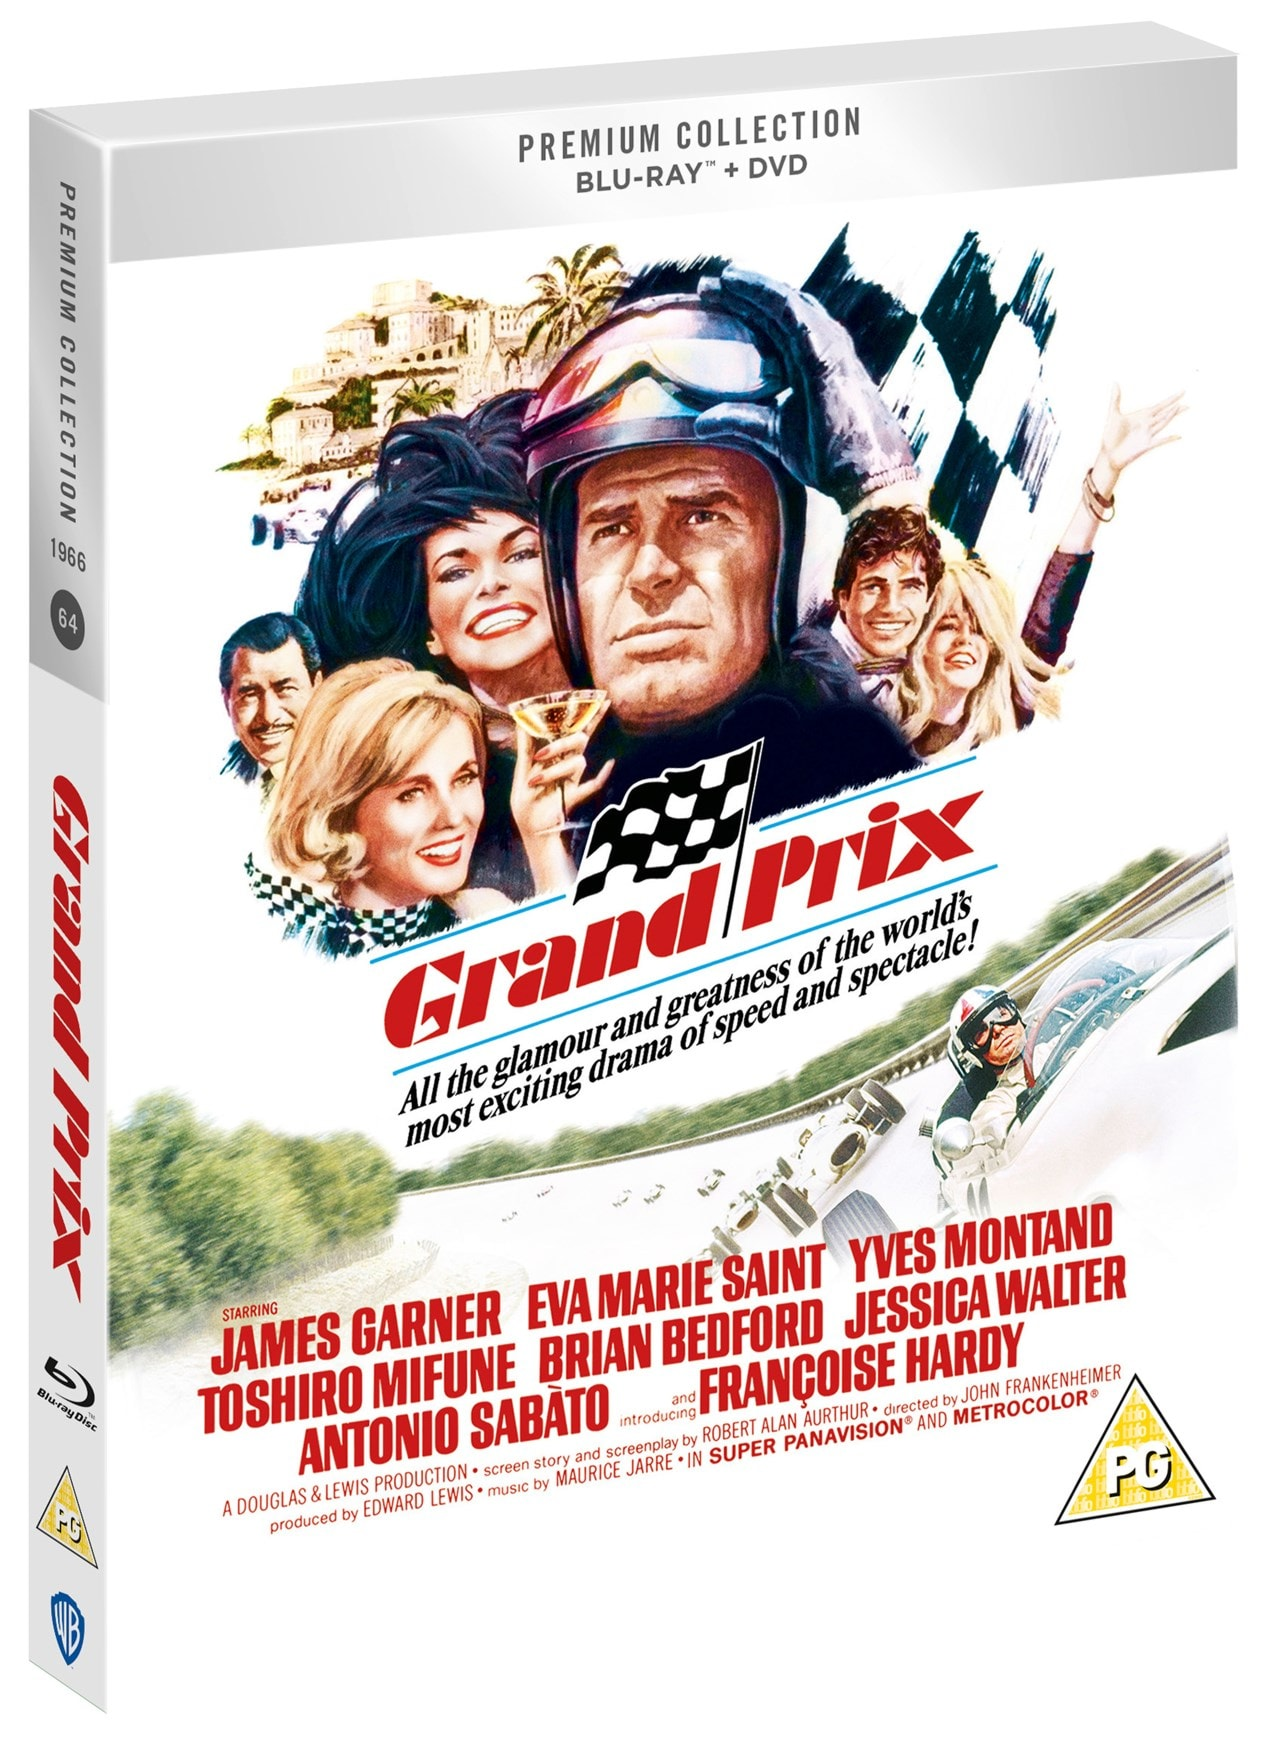 Grand Prix (hmv Exclusive) - The Premium Collection - 2